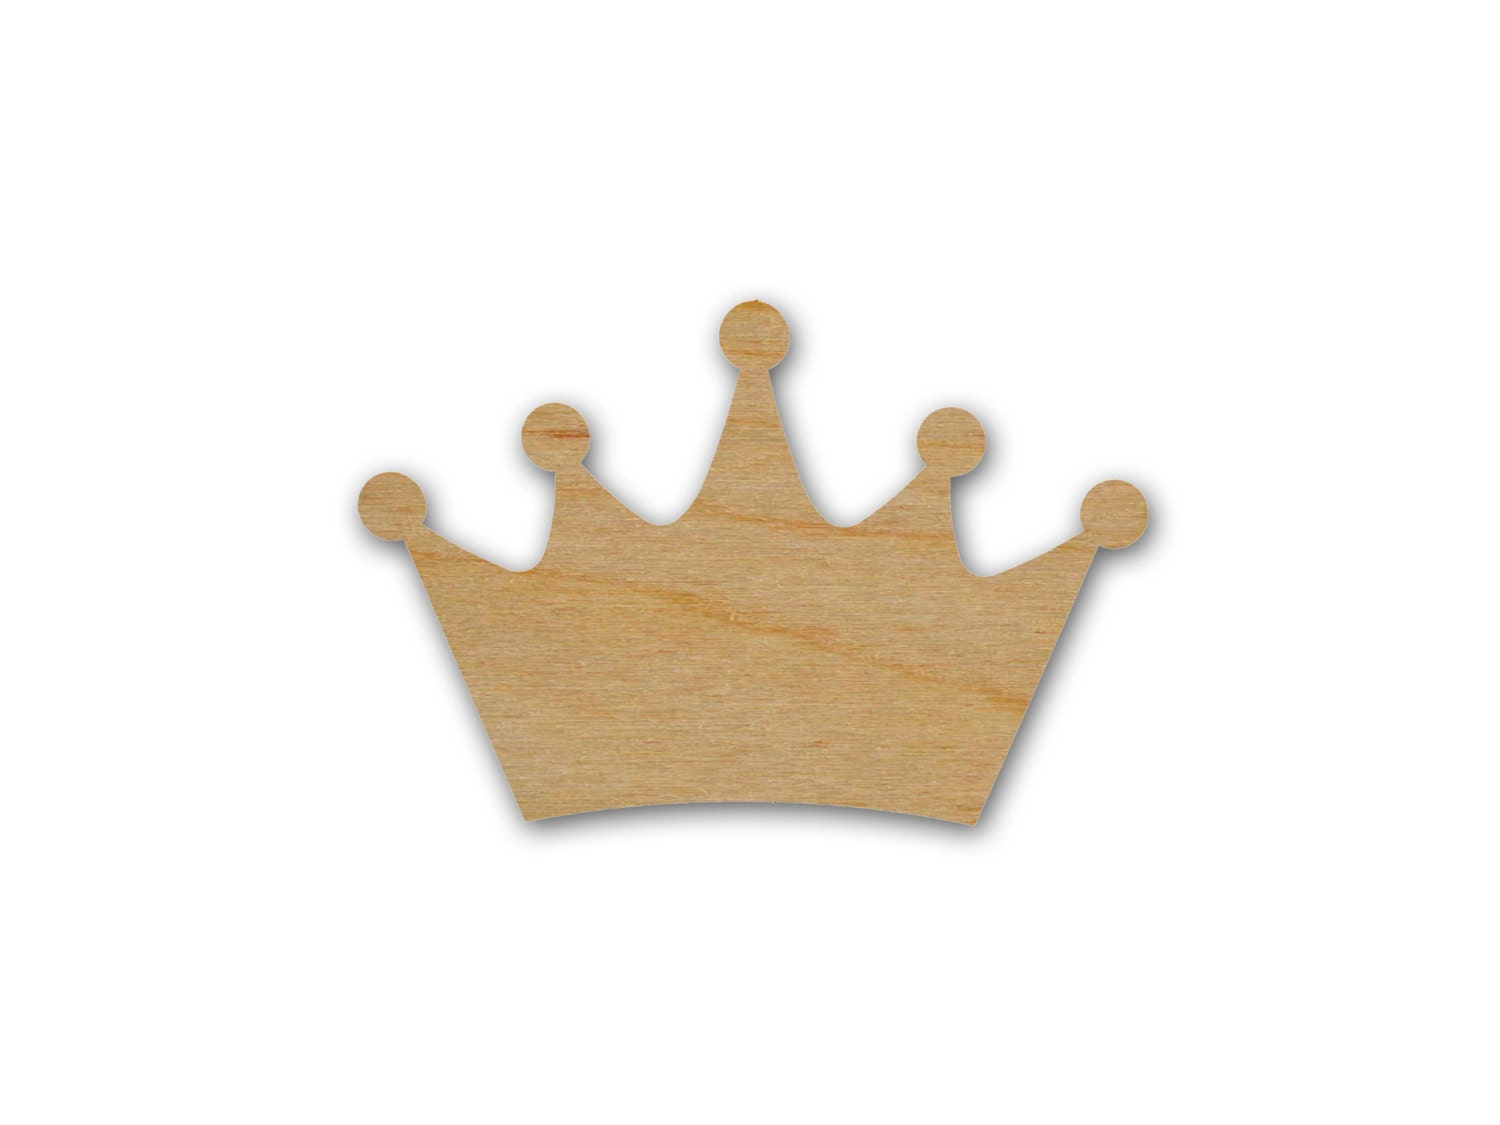 King Crown Unfinished Wood Cut Out By ArtisticCraftSupply